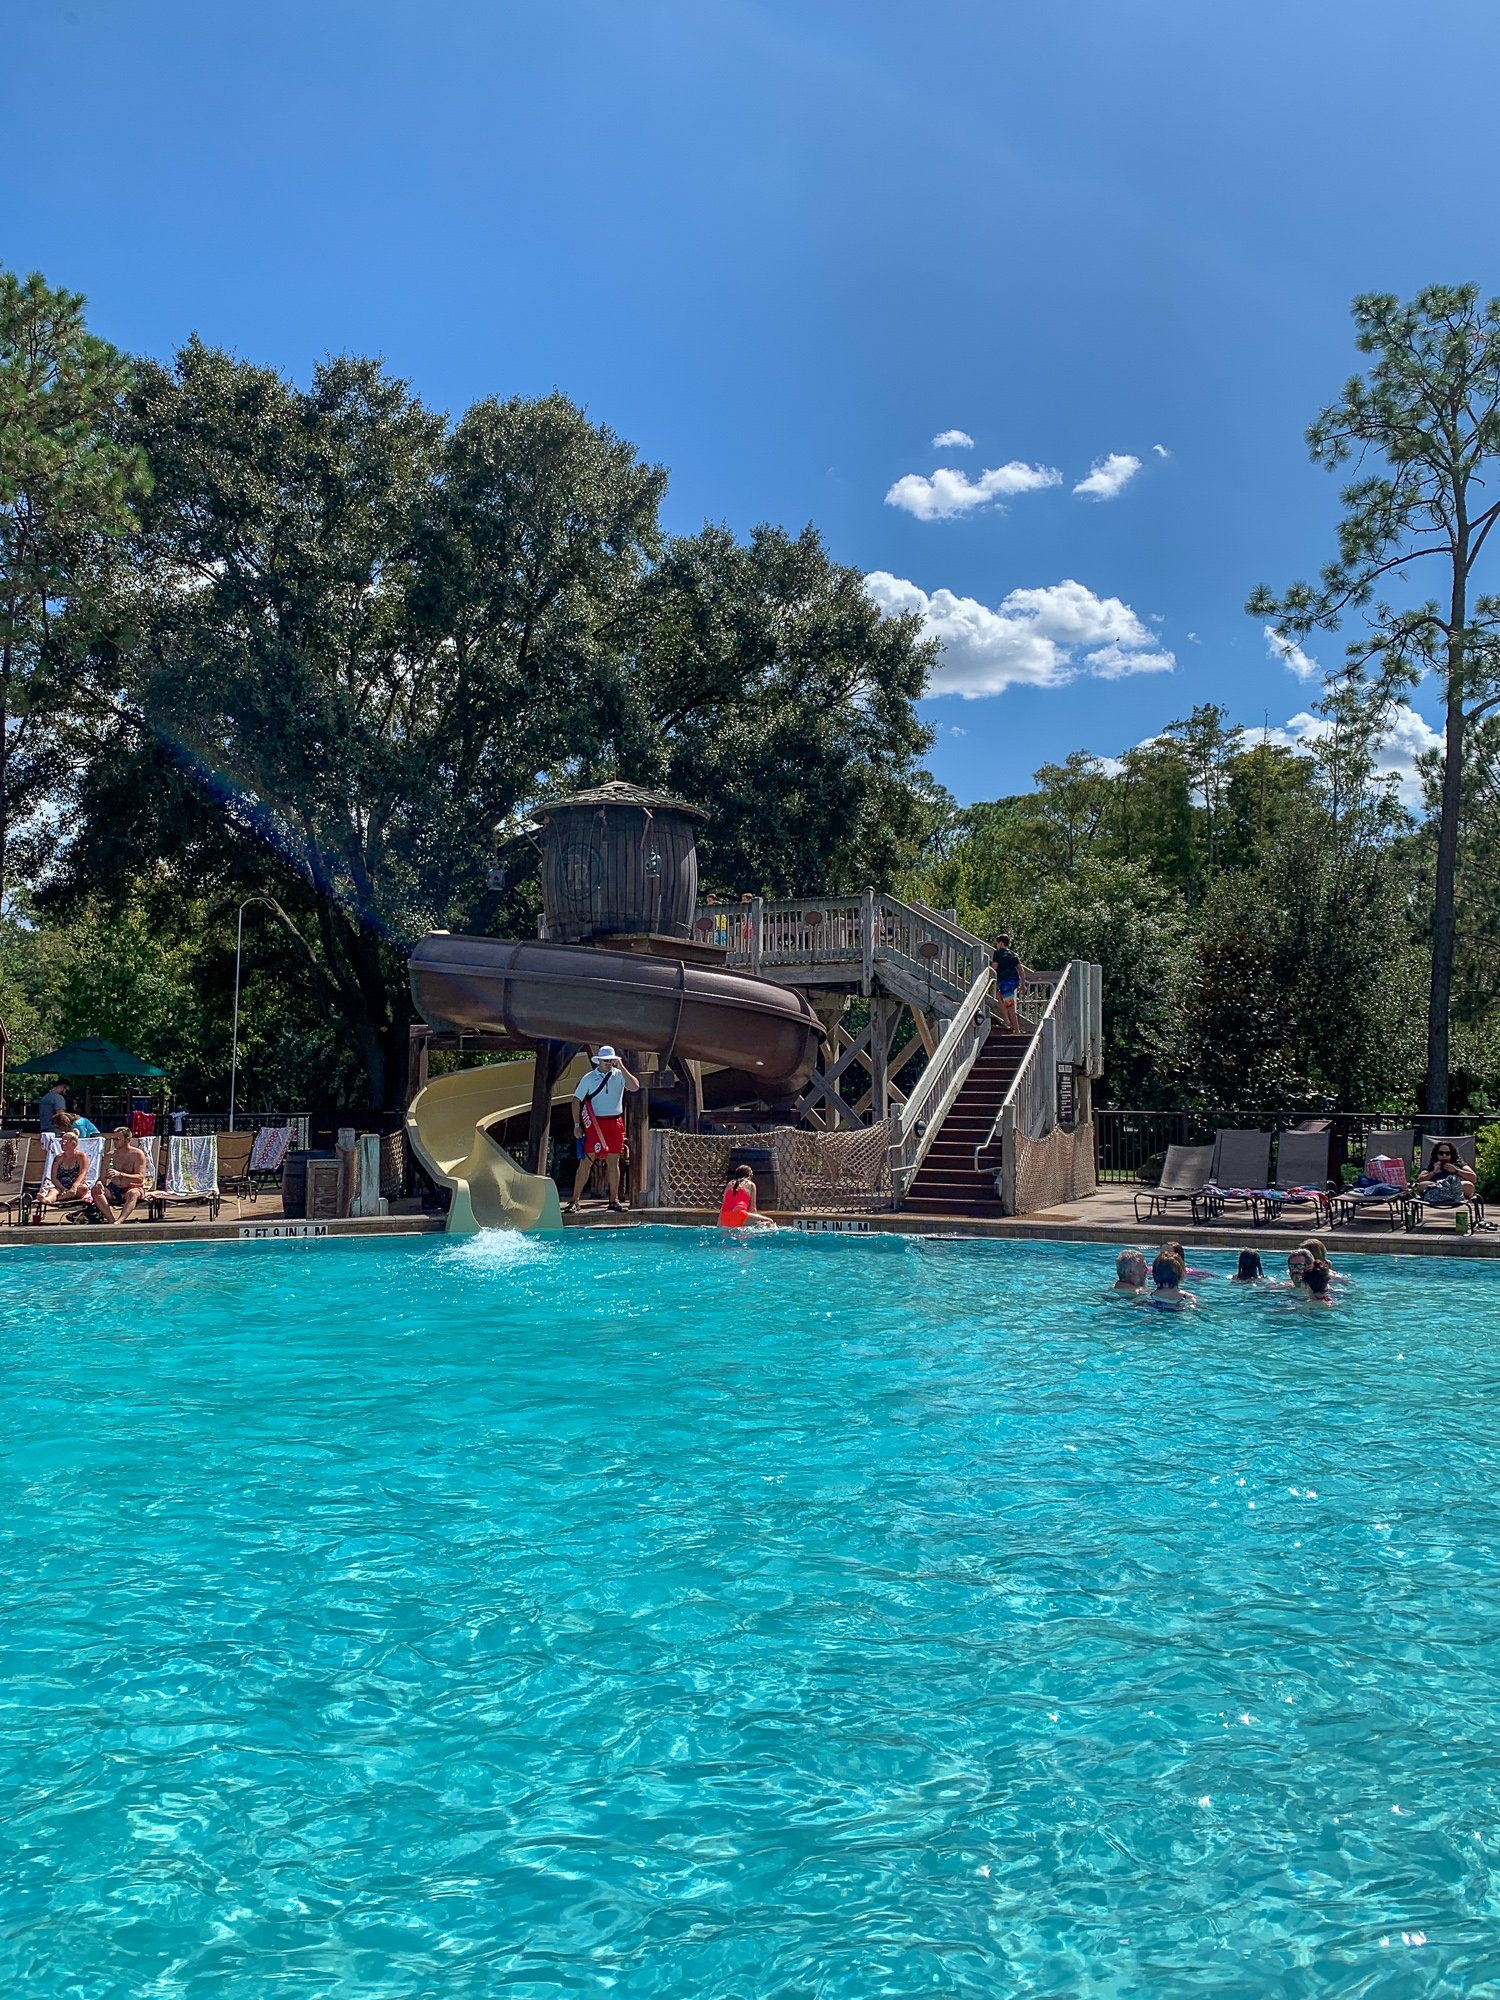 Swimming pool with waterslide at Disney's Fort Wilderness Resort